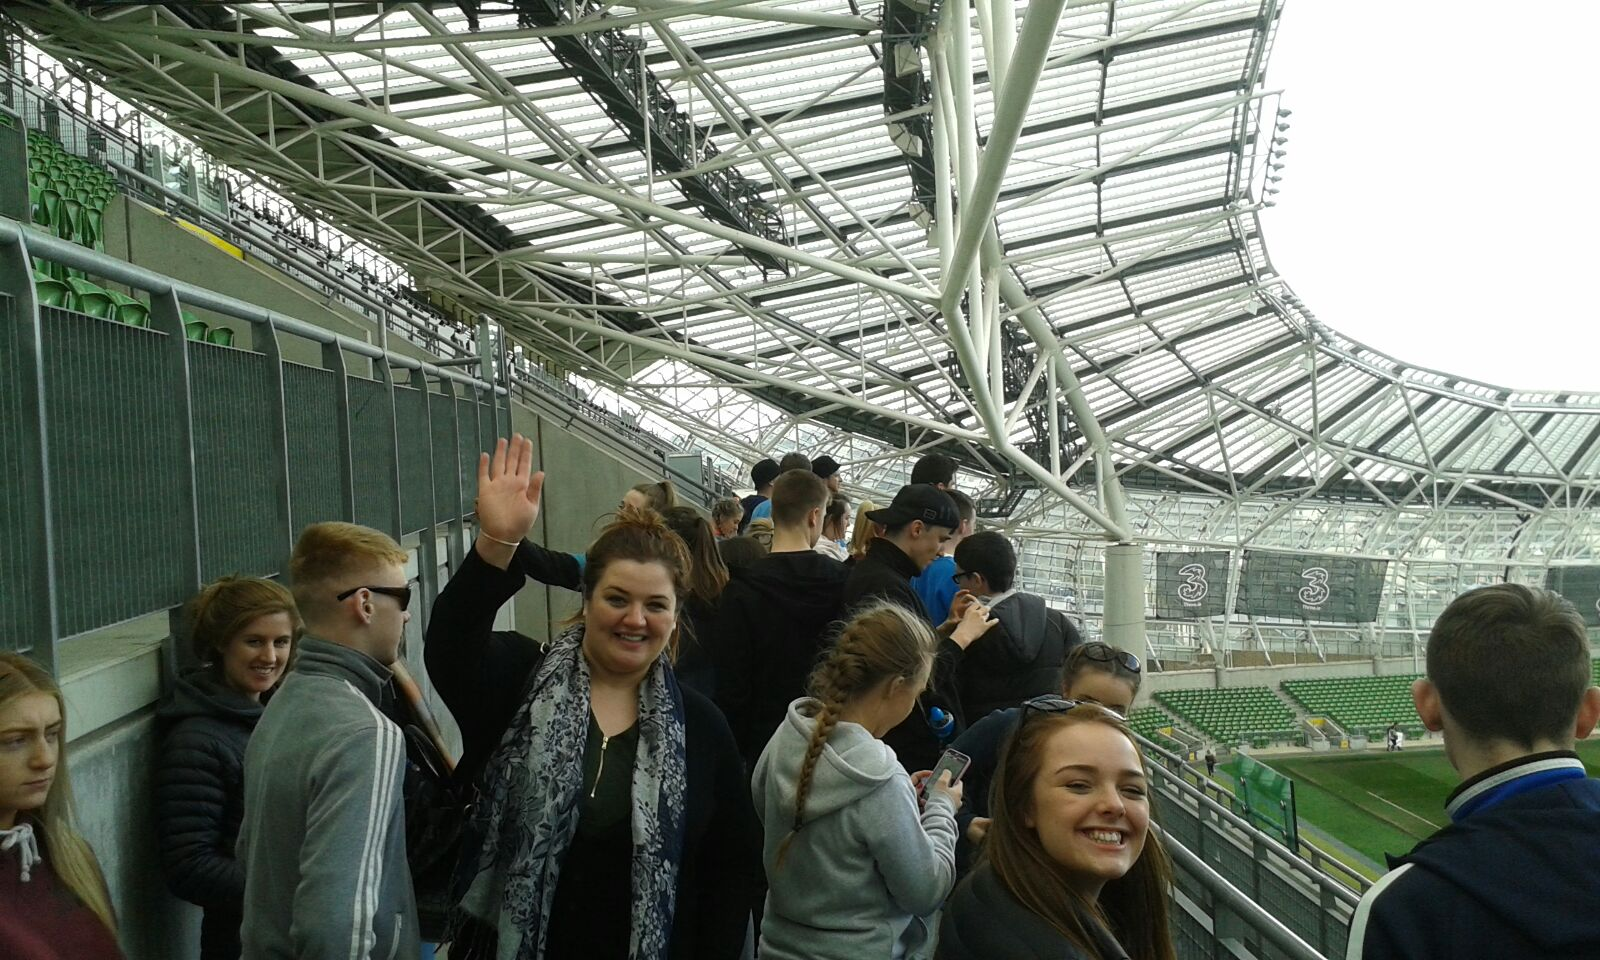 Trip to Aviva Stadium